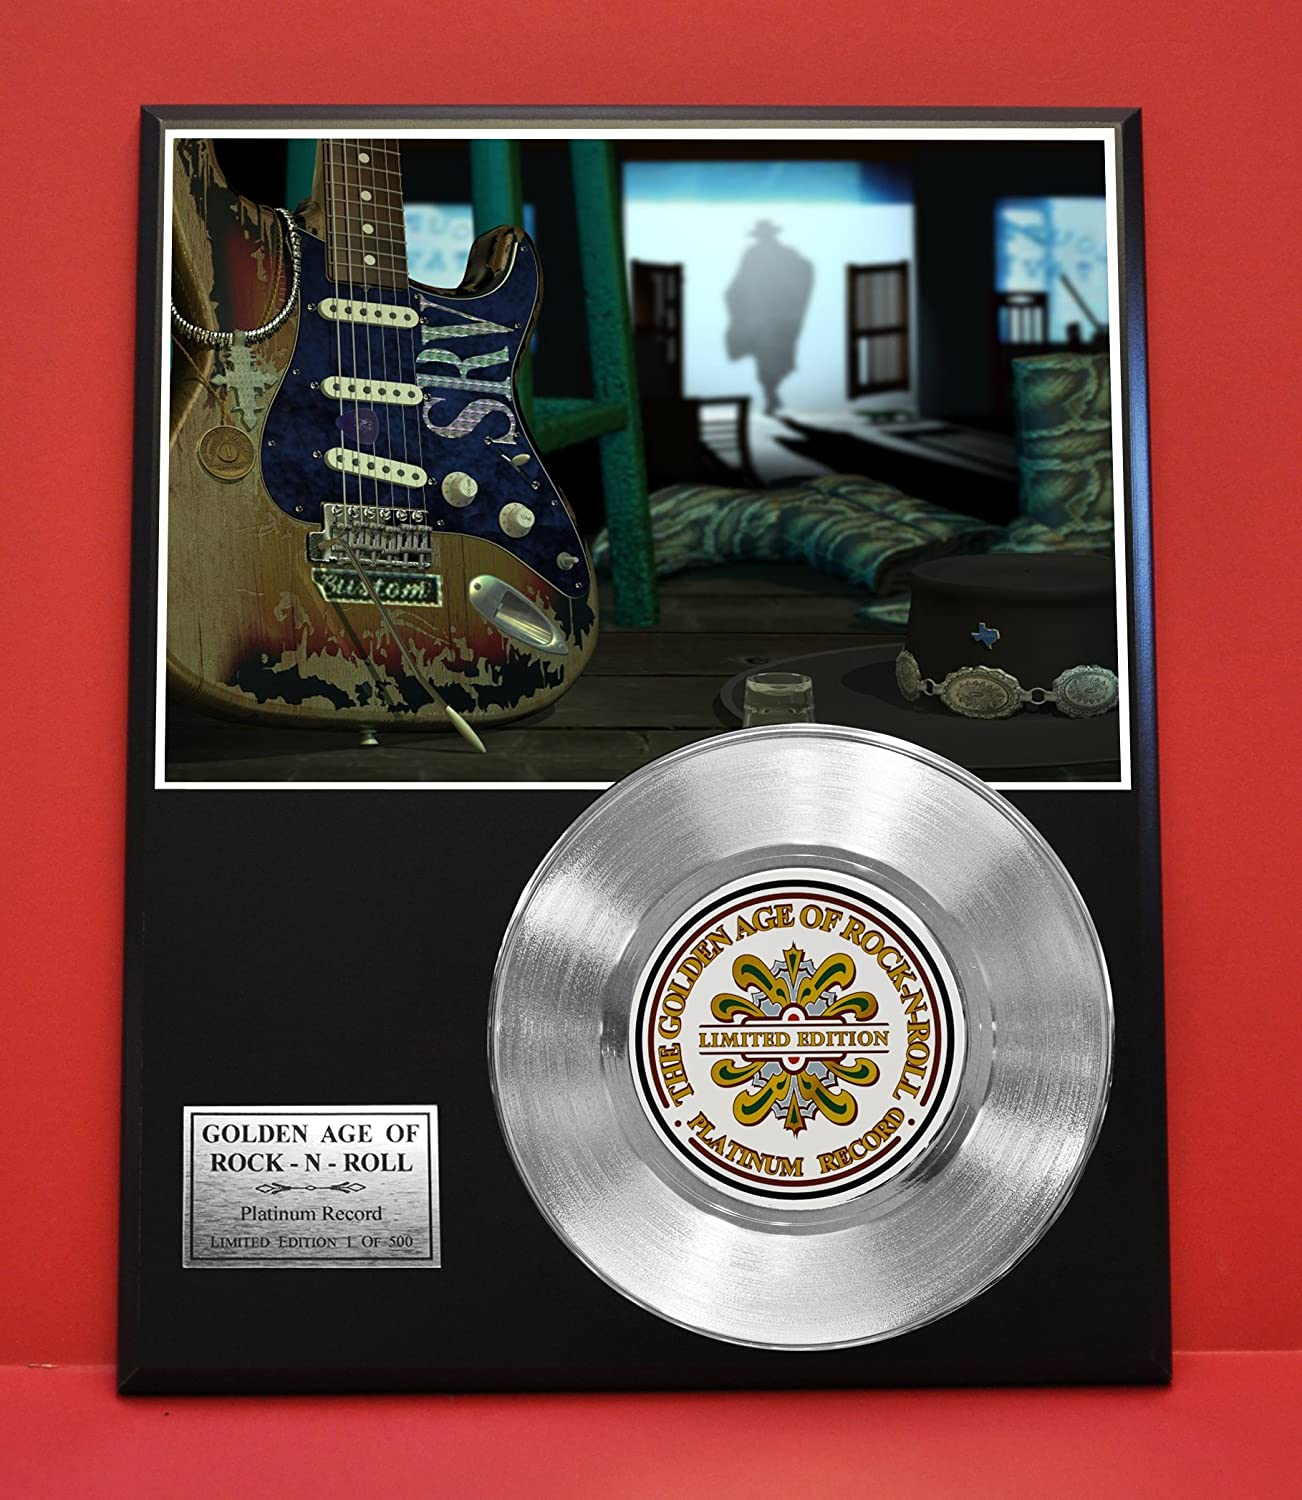 Stevie Ray Vaughn LTD Edition Non Riaa Platinum Record Display - Award Quality Music Memorabilia Wall Art - Gold Record Outlet